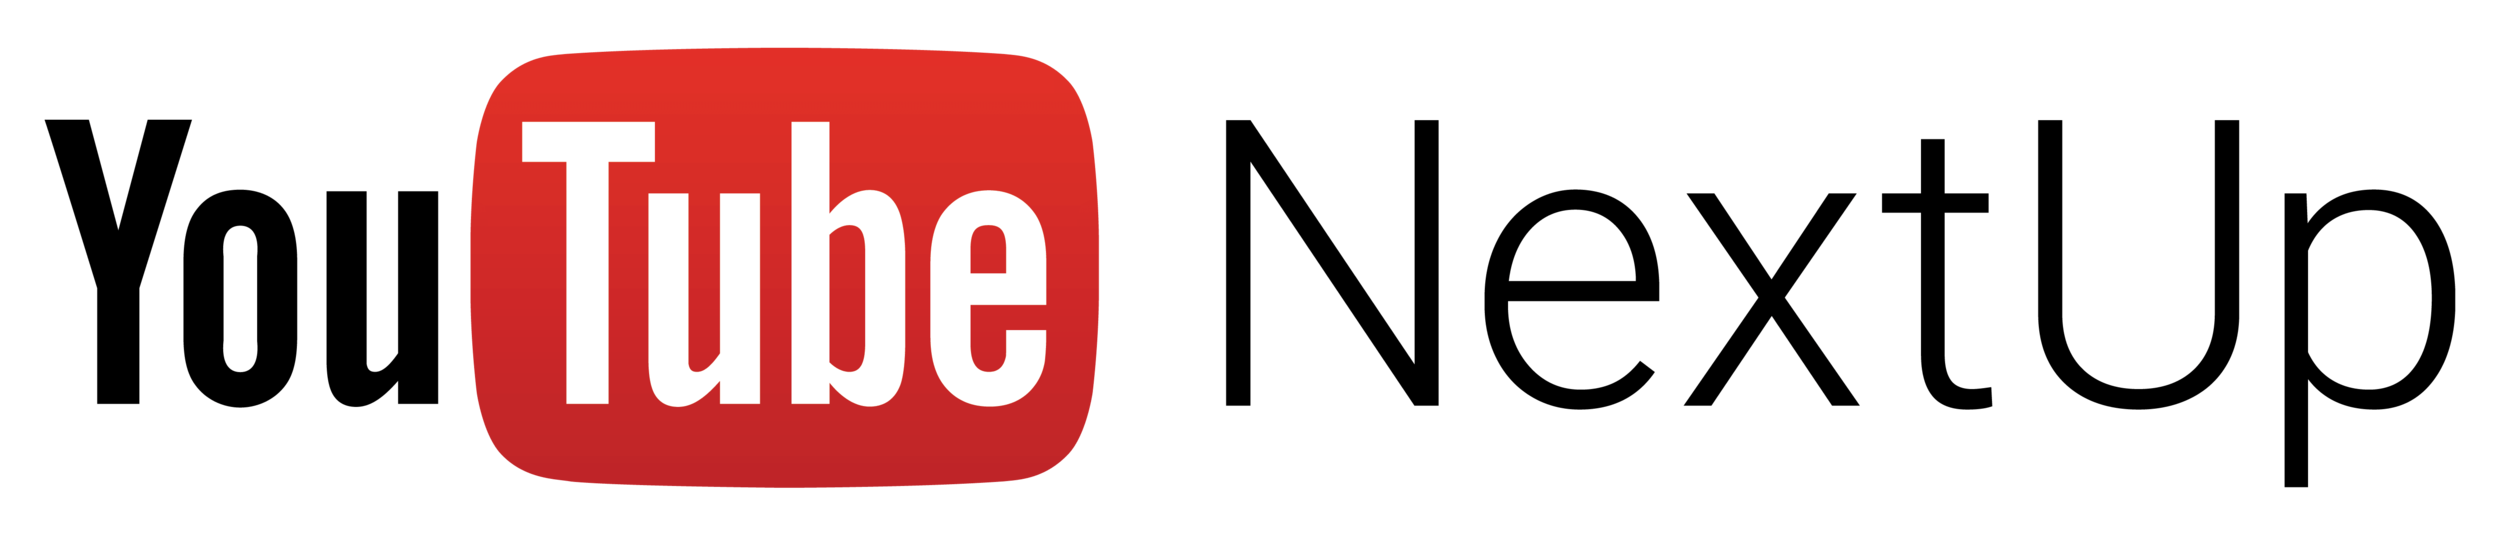 YouTube NextUp Logo 2017